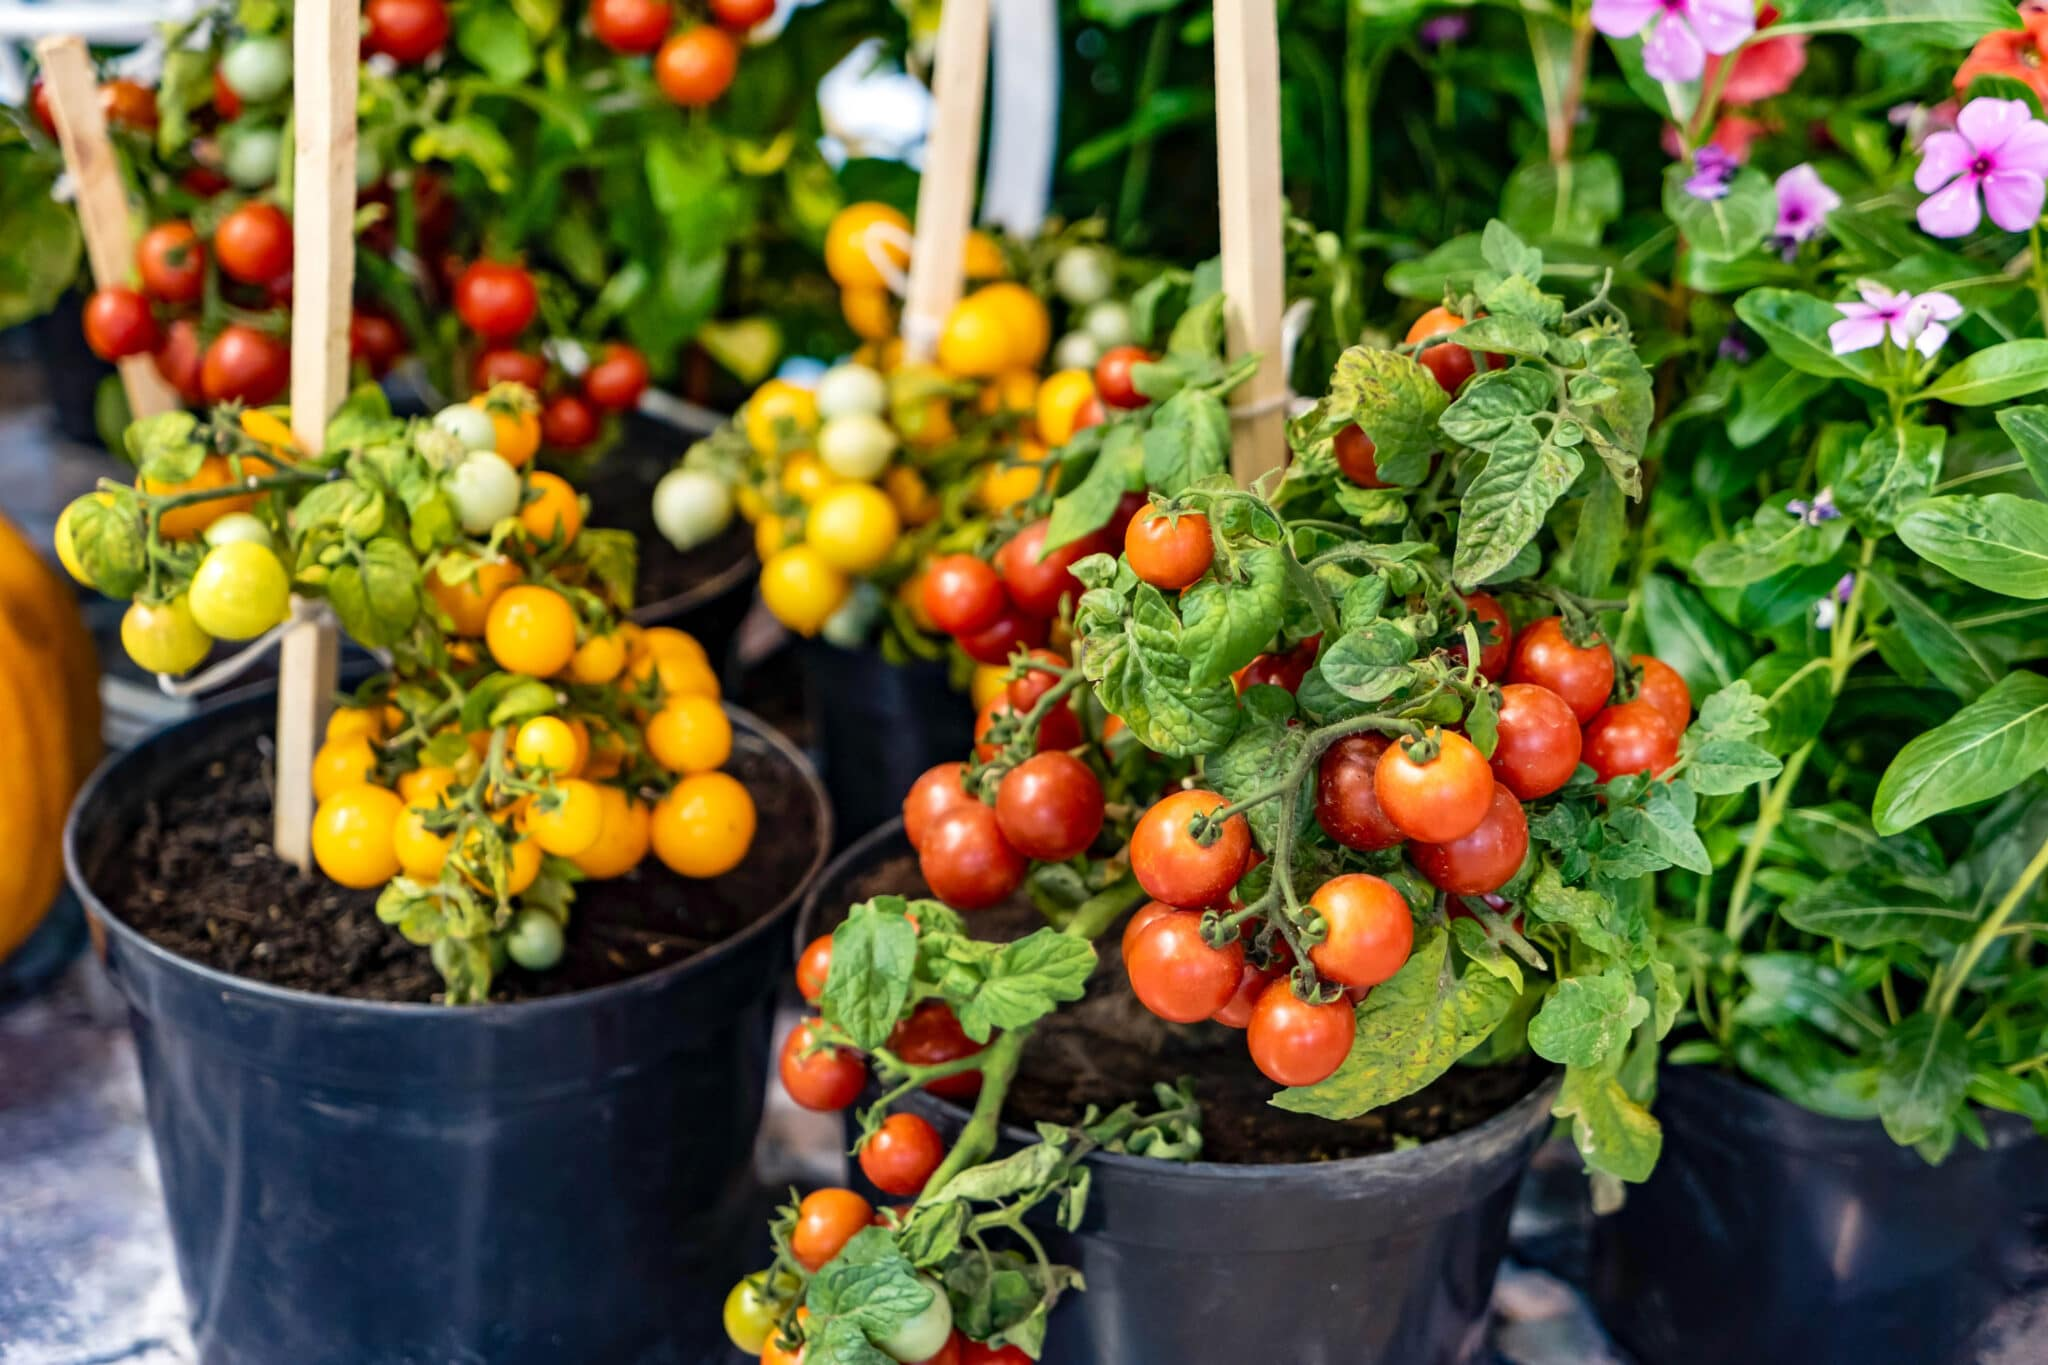 Small cherry tomato plants growing in pots in the garden. The plants are laden with ripe tomatoes.